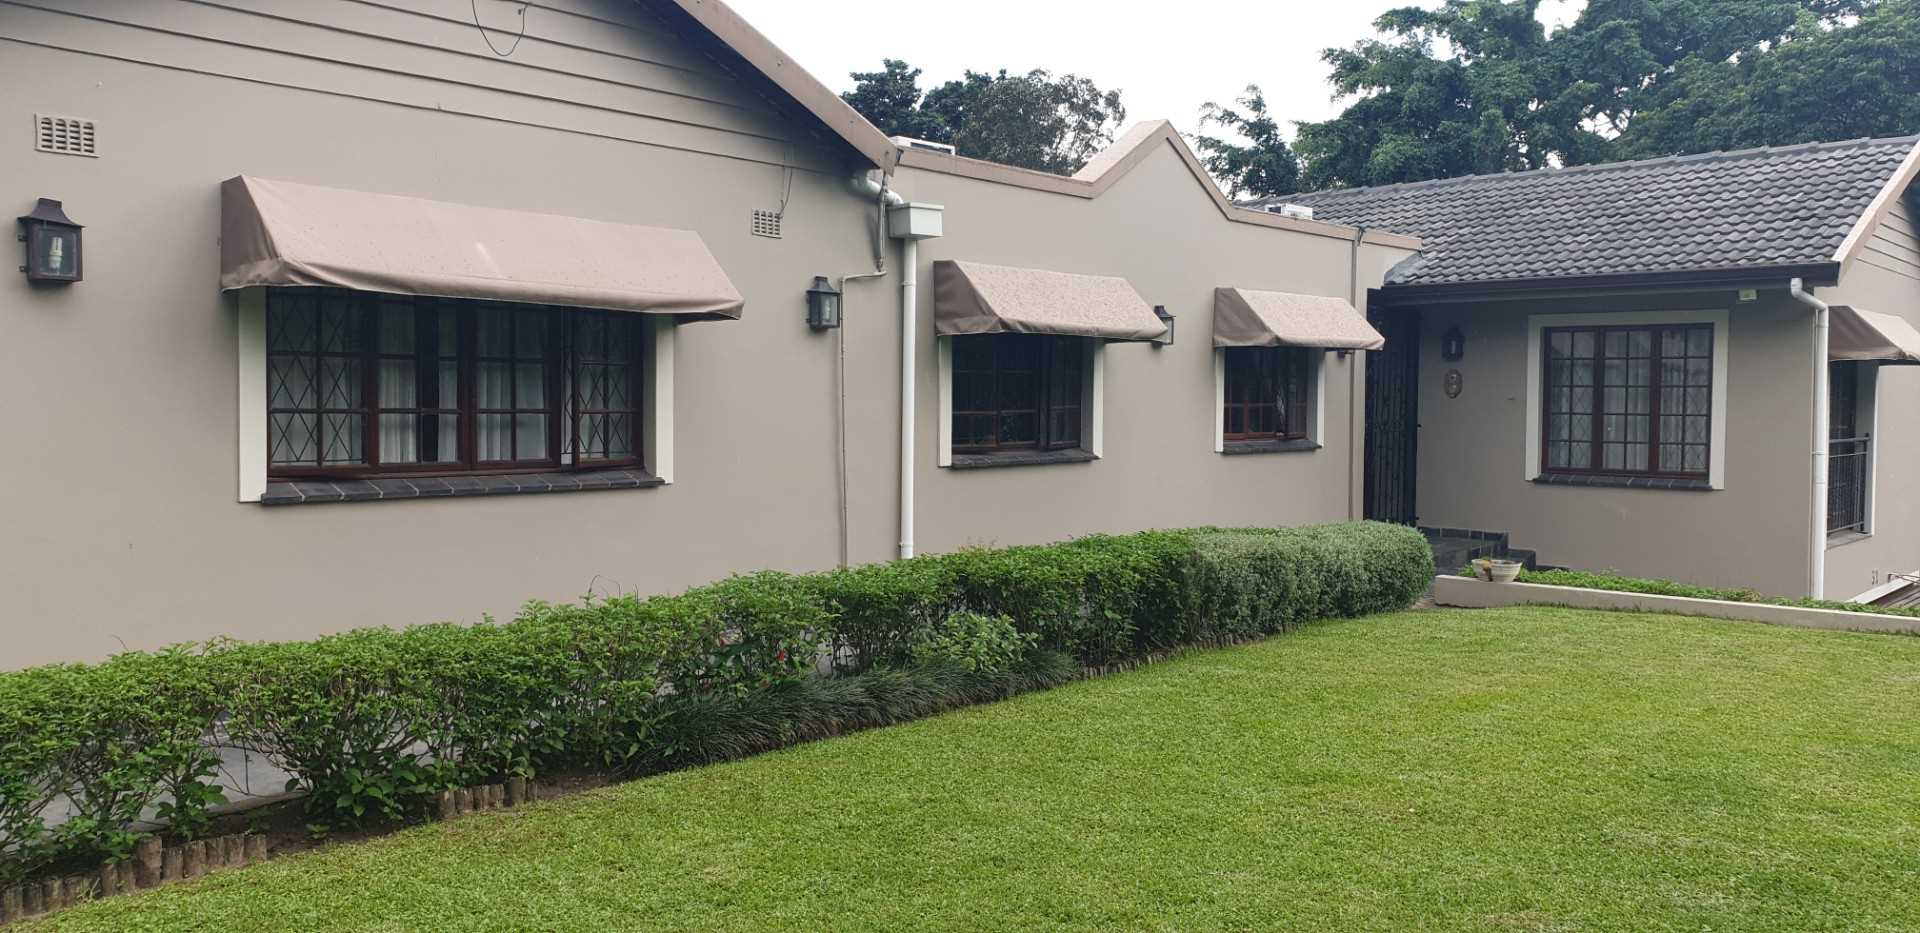 Immaculate house in sort after Padfield Park.